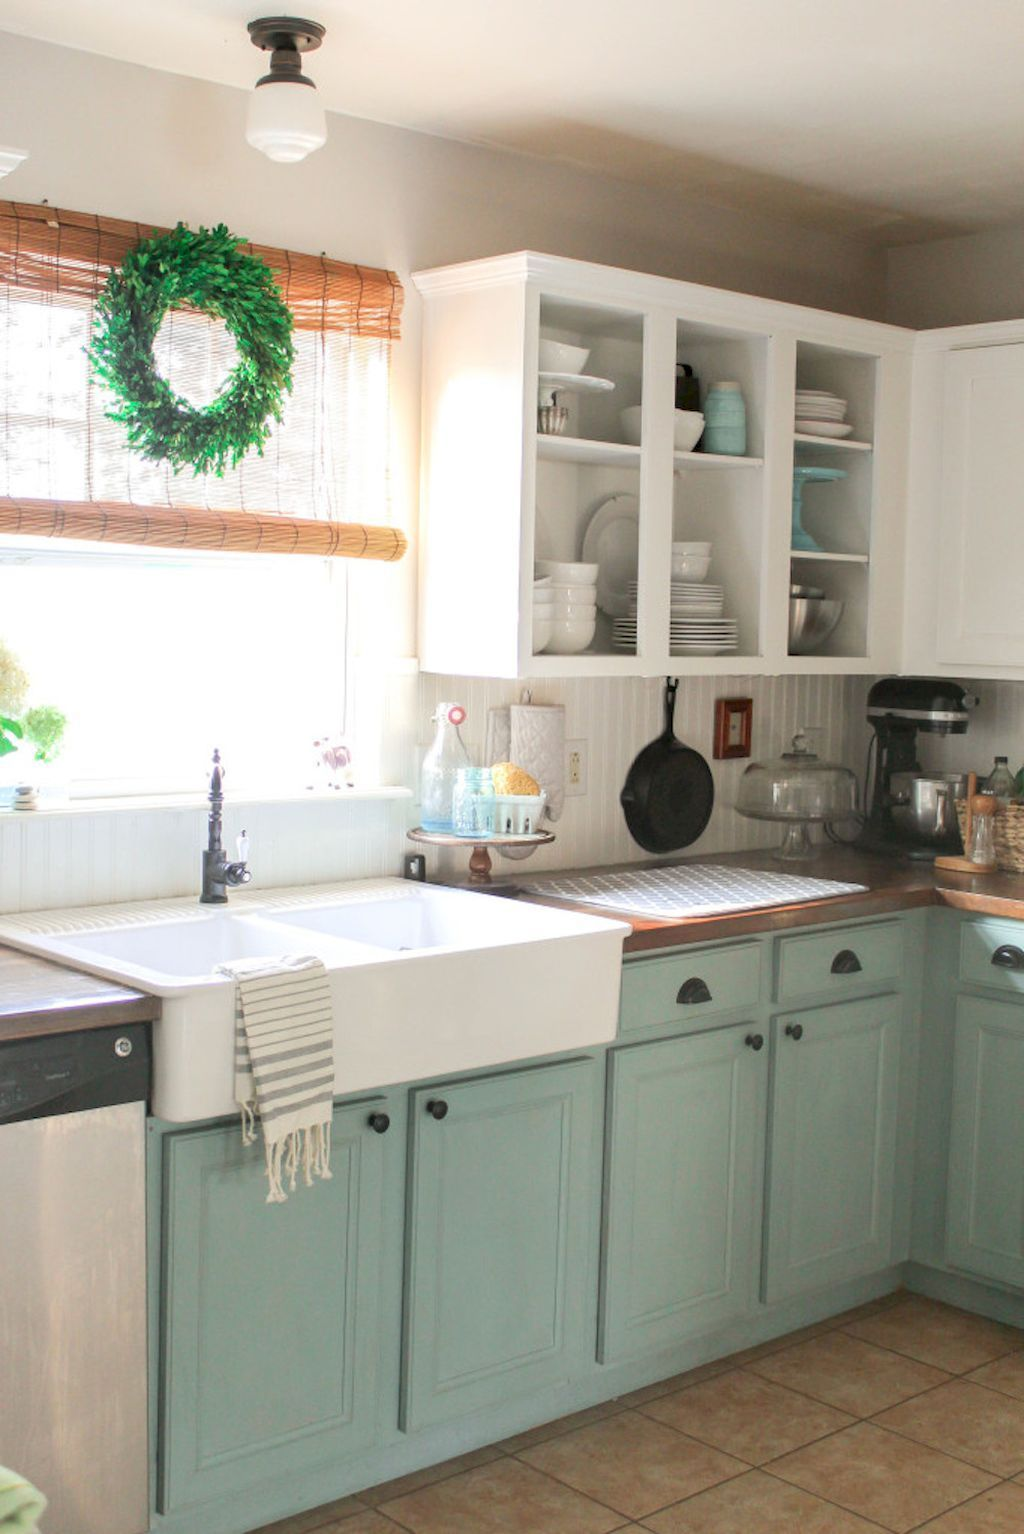 90+ BEST FARMHOUSE KITCHEN CABINET DESIGN IDEAS - crompton news #farmhousekitchencolors